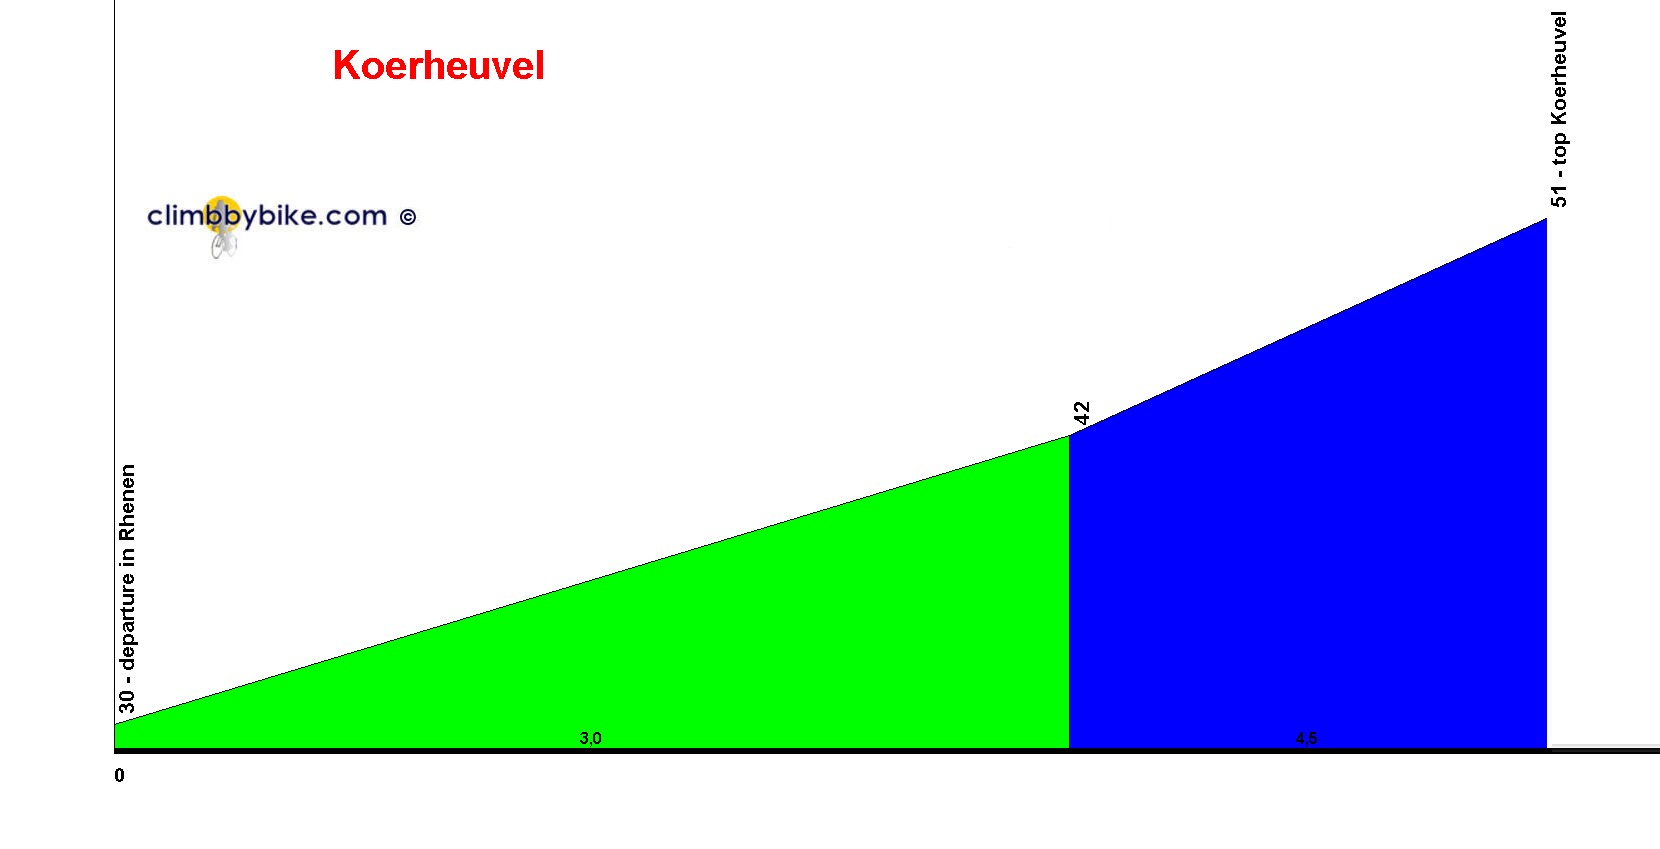 Elevation profile for Koerheuvel